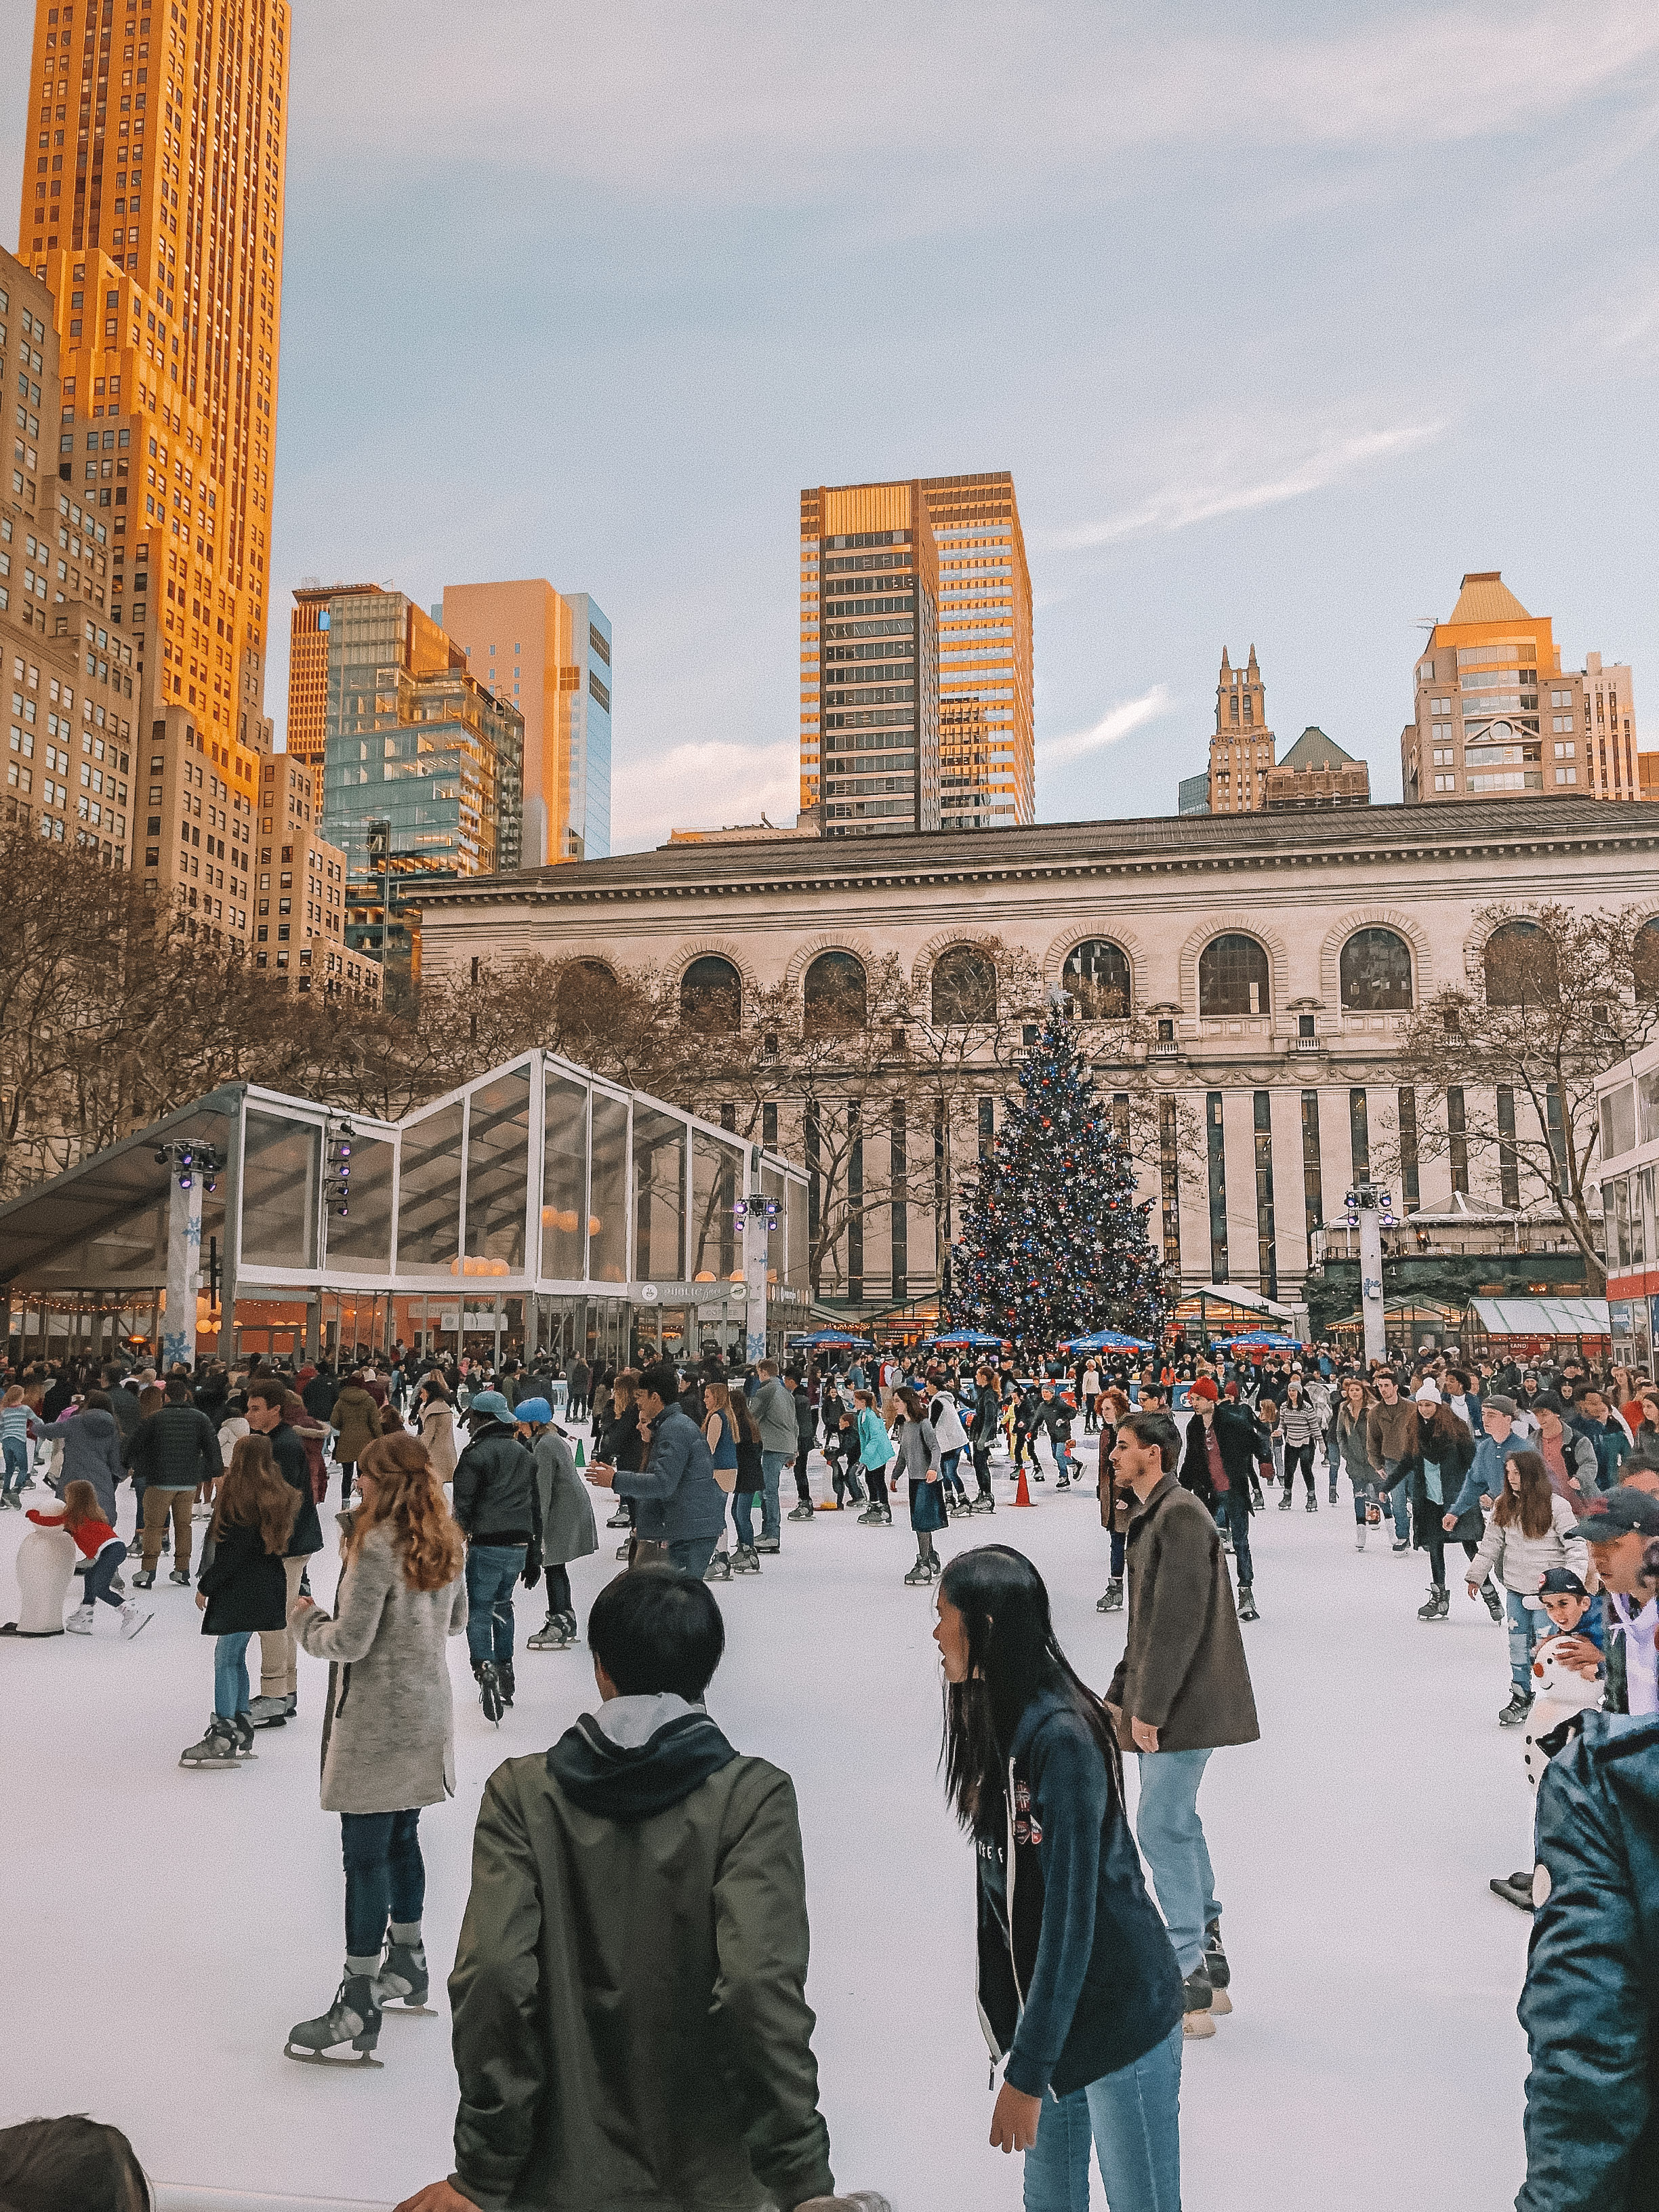 Ice skating rink in Bryant Park